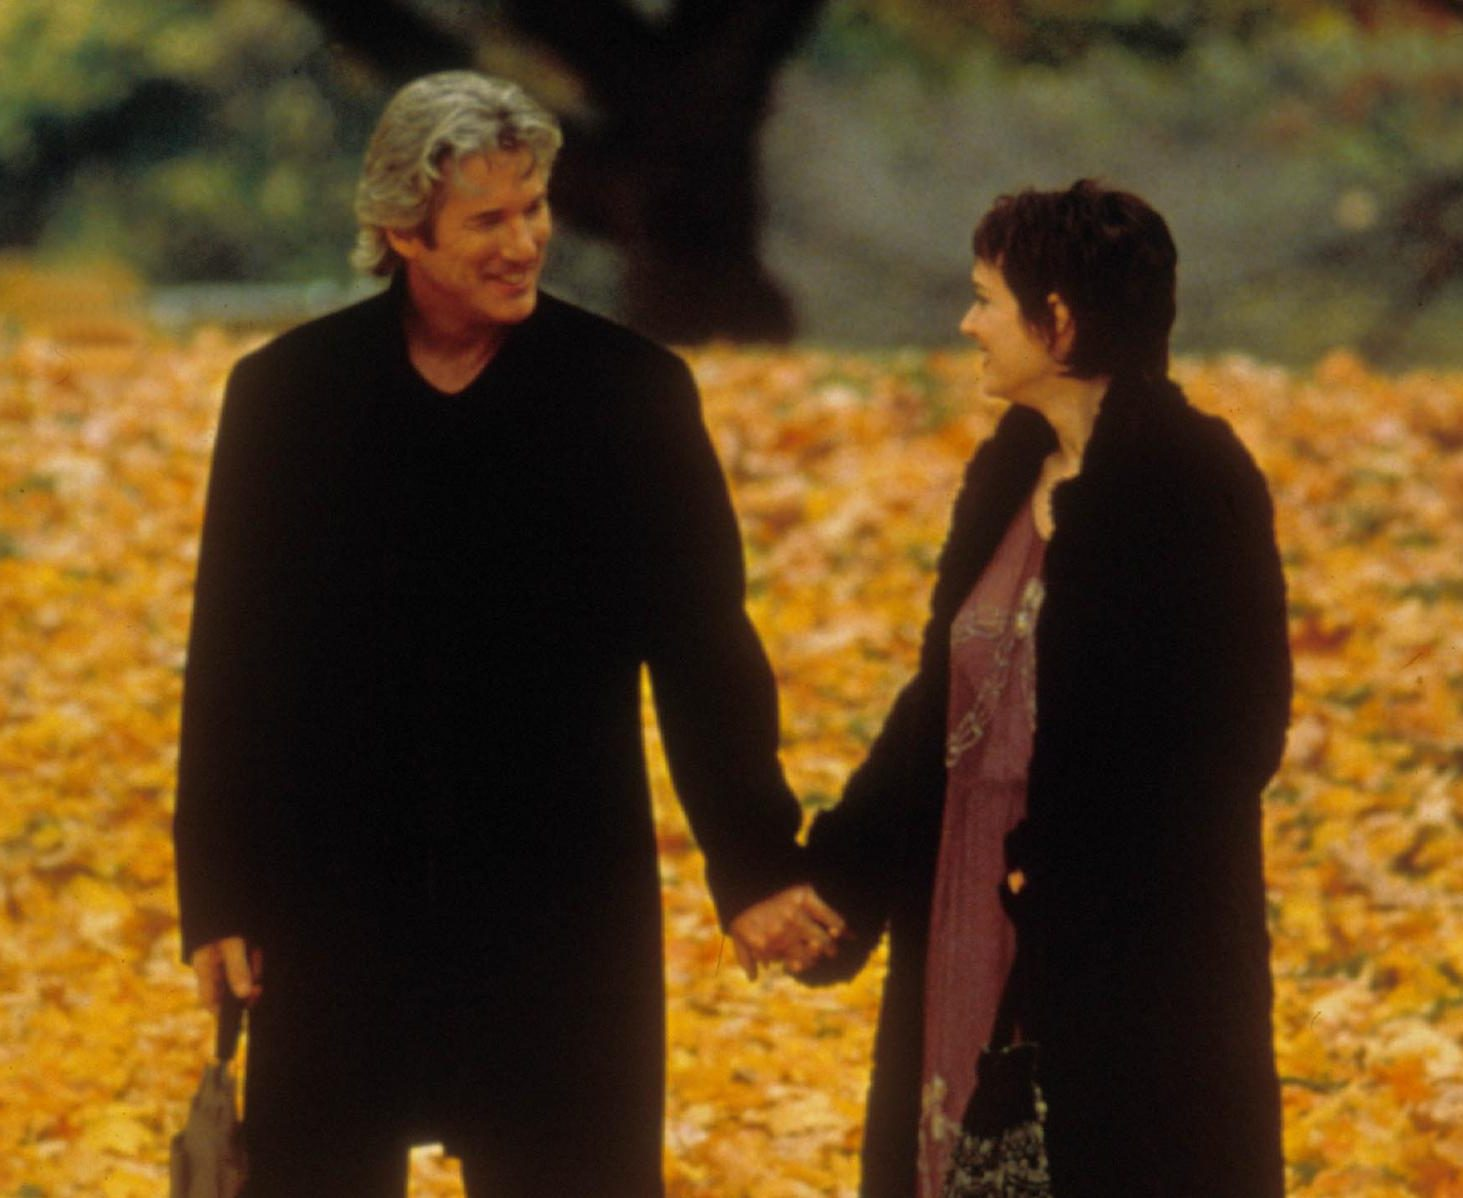 12 1 e1601974768116 20 Unrealistic (And Slightly Uncomfortable) Age Gaps Between Film Couples